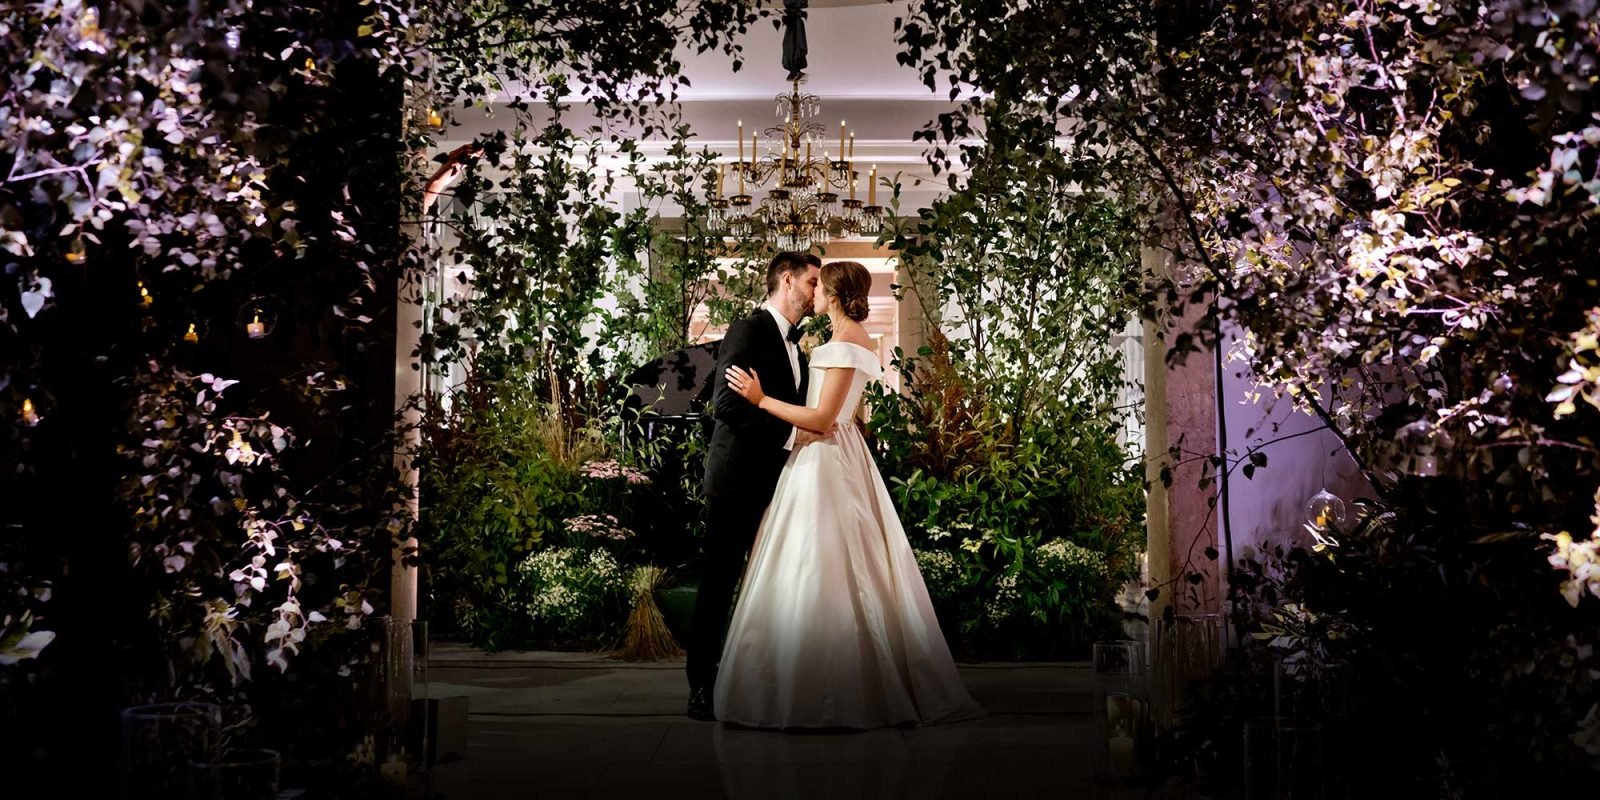 Woodland Inspired Wedding at Claridges Hotel